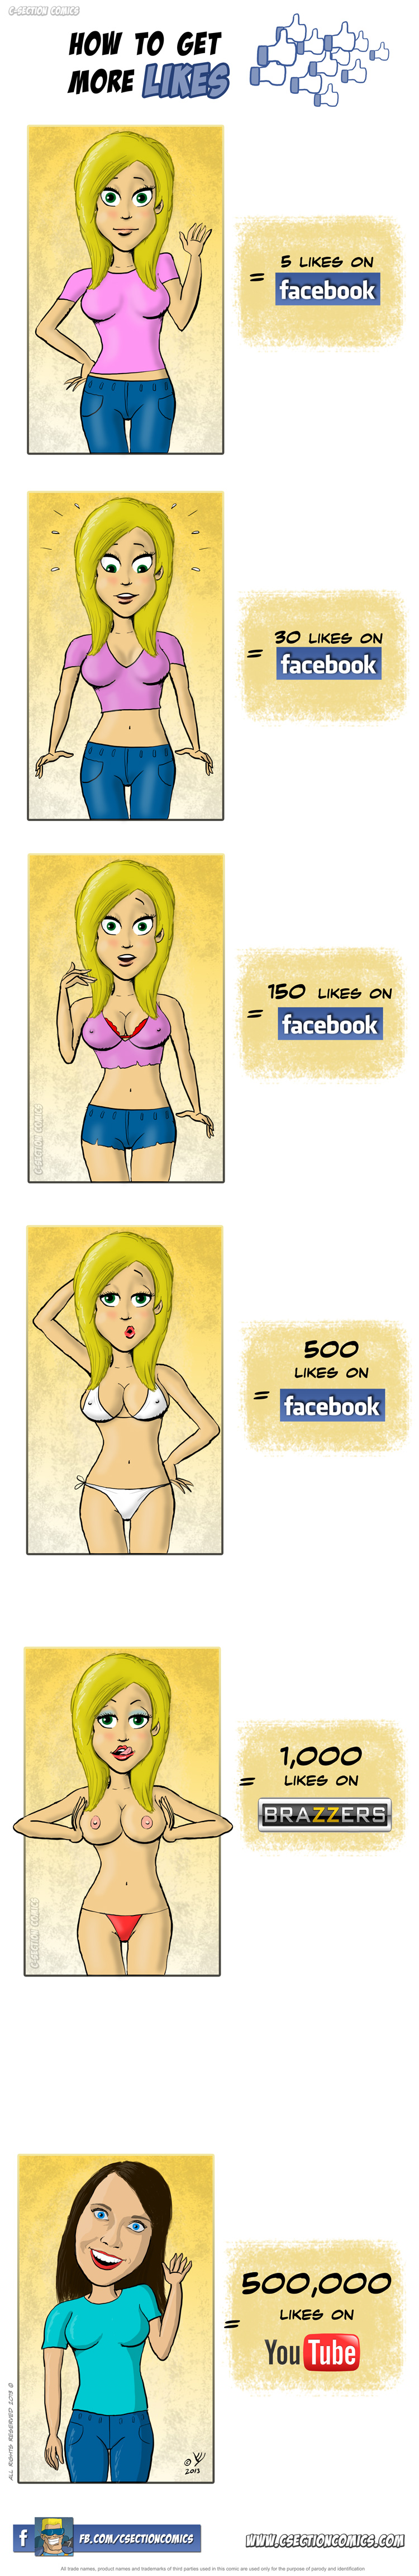 comic-2013-03-14-howto-get-more-likes.jpg